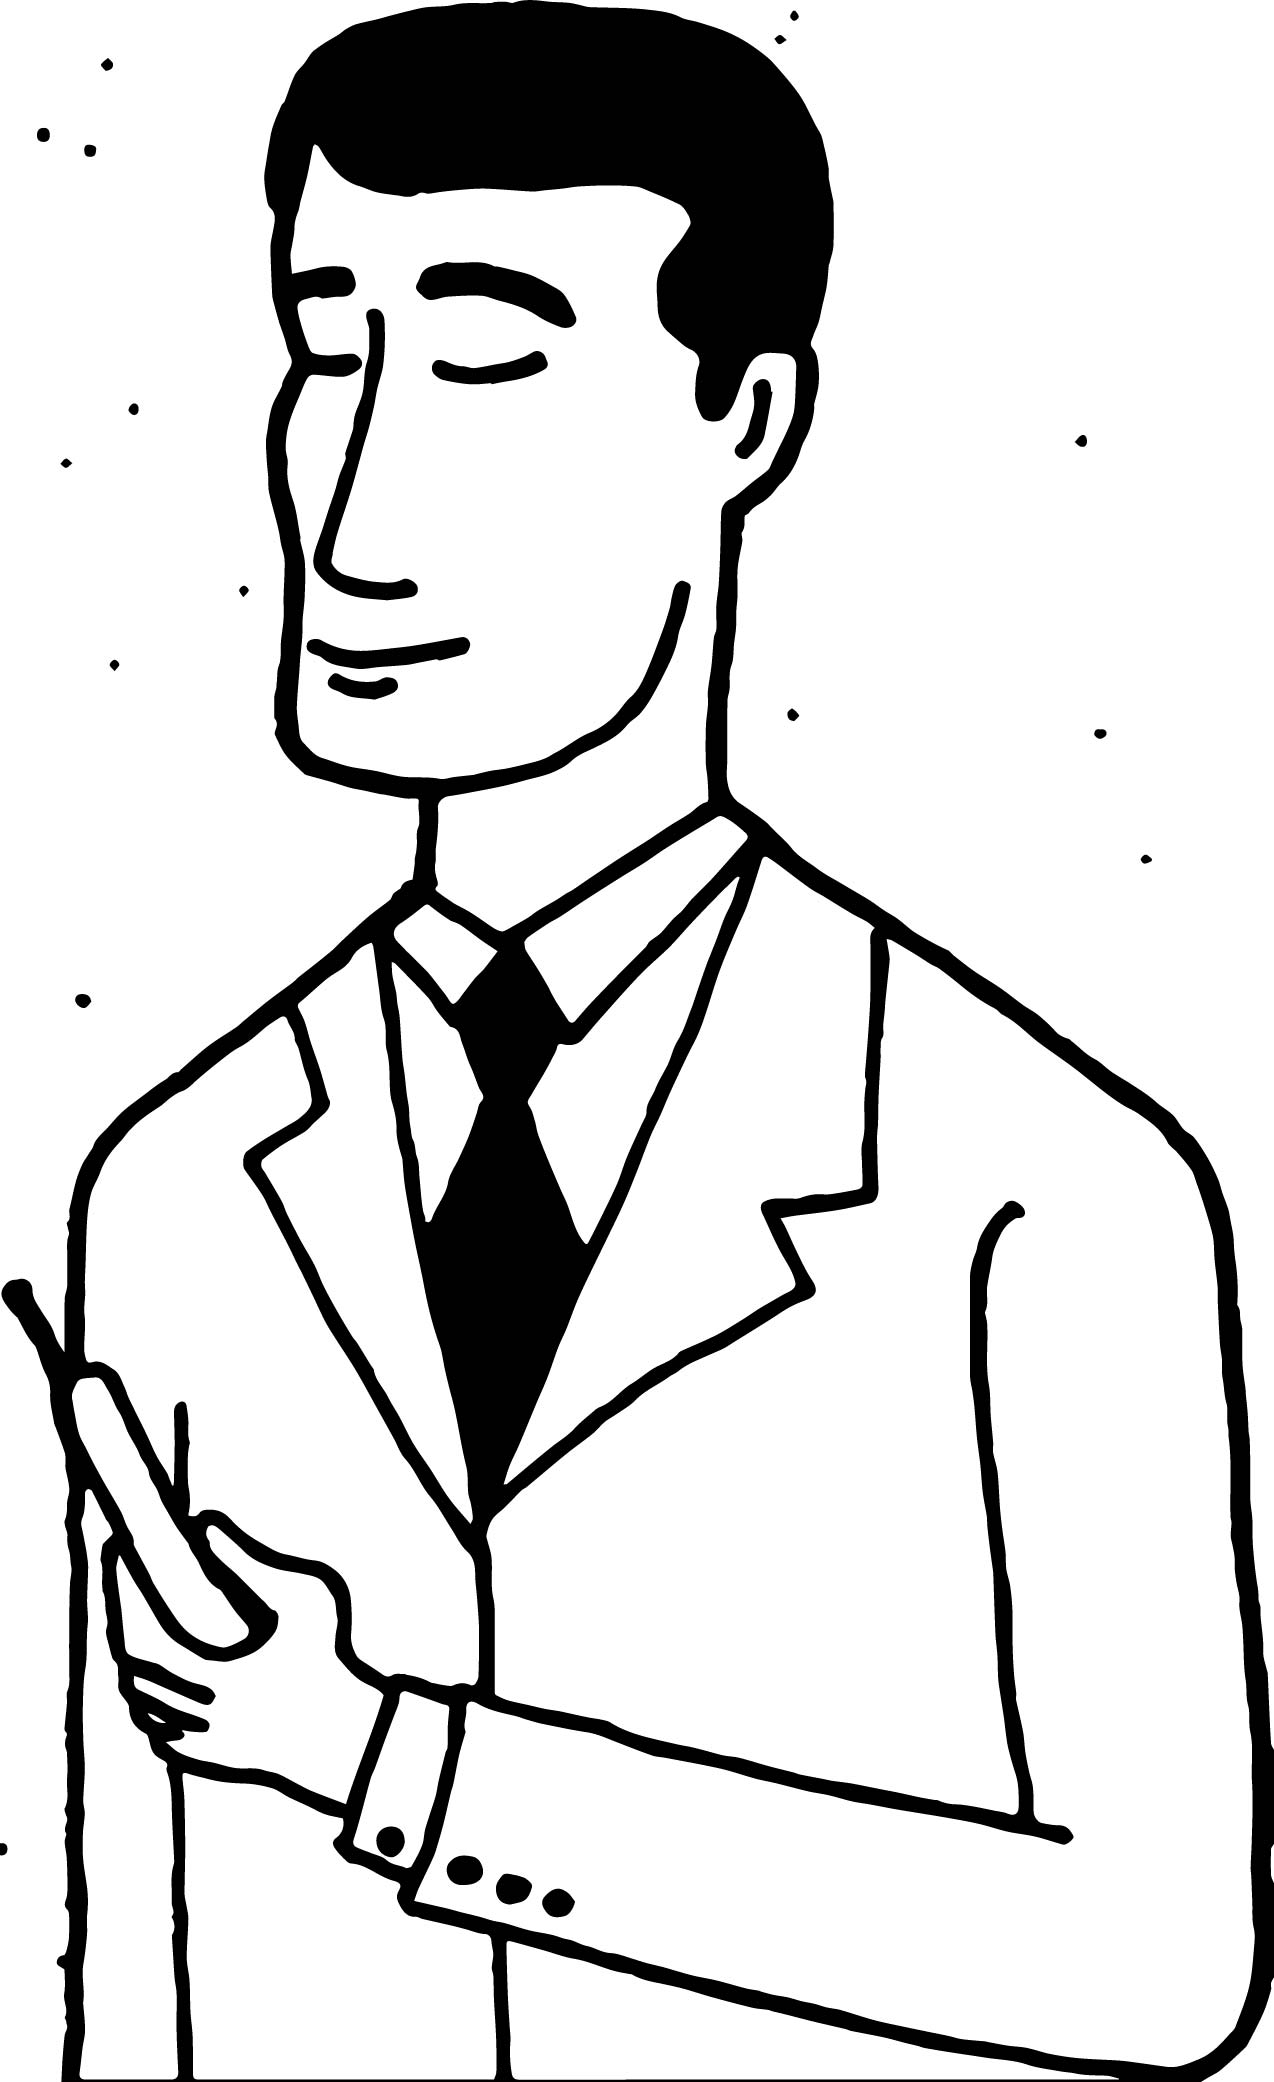 Man Dialing Coloring Page